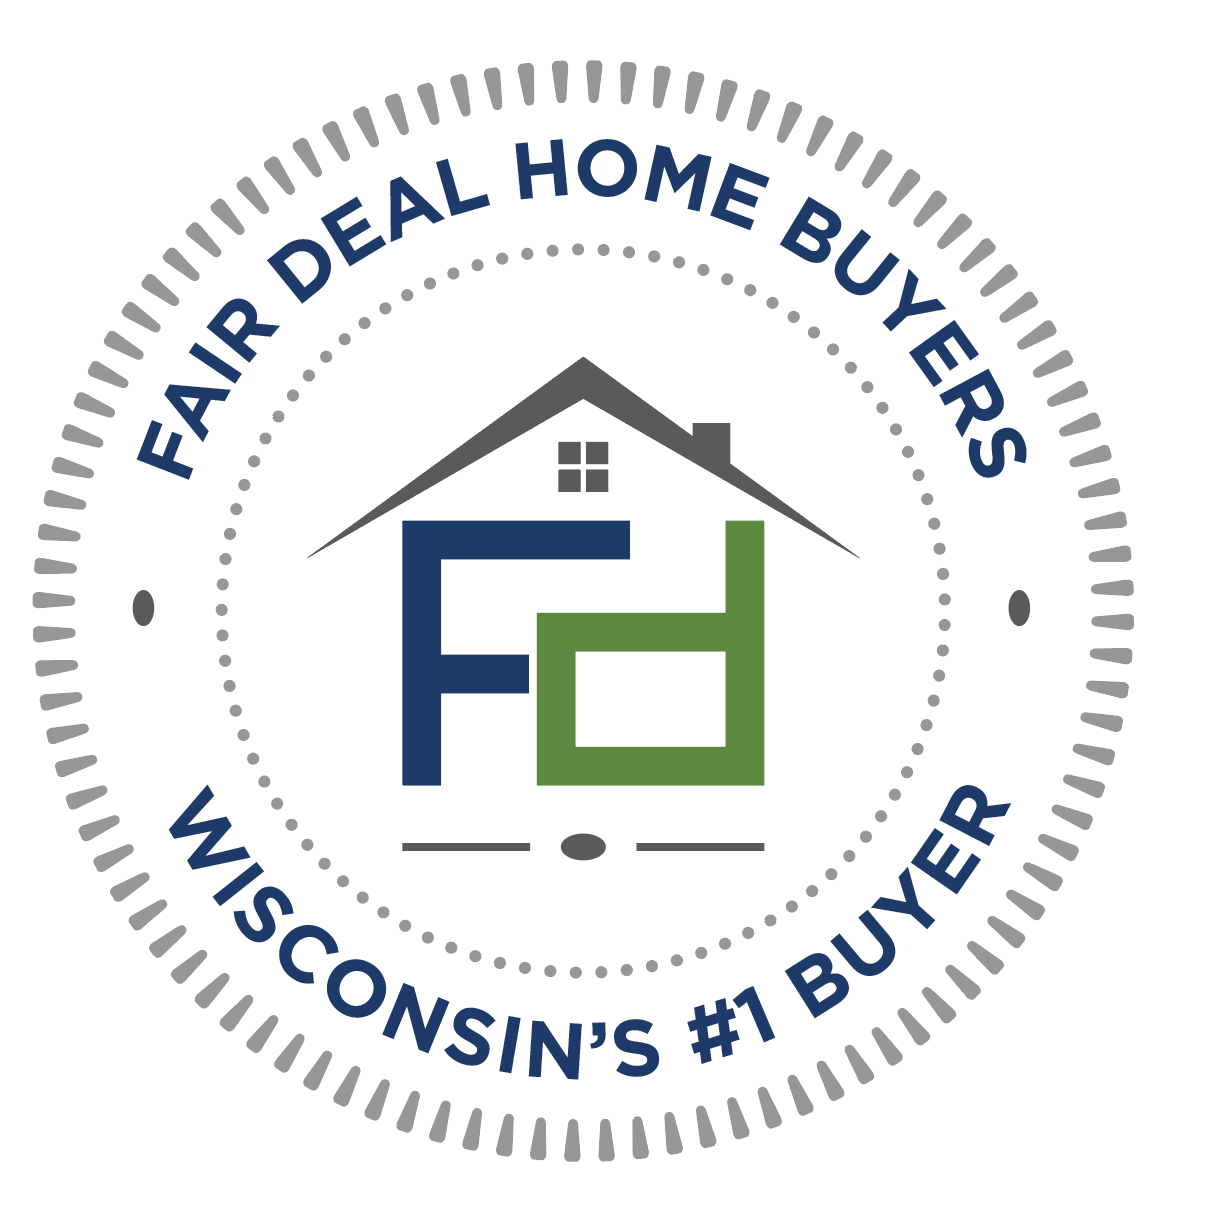 Fair Deal Home Buyers Logo